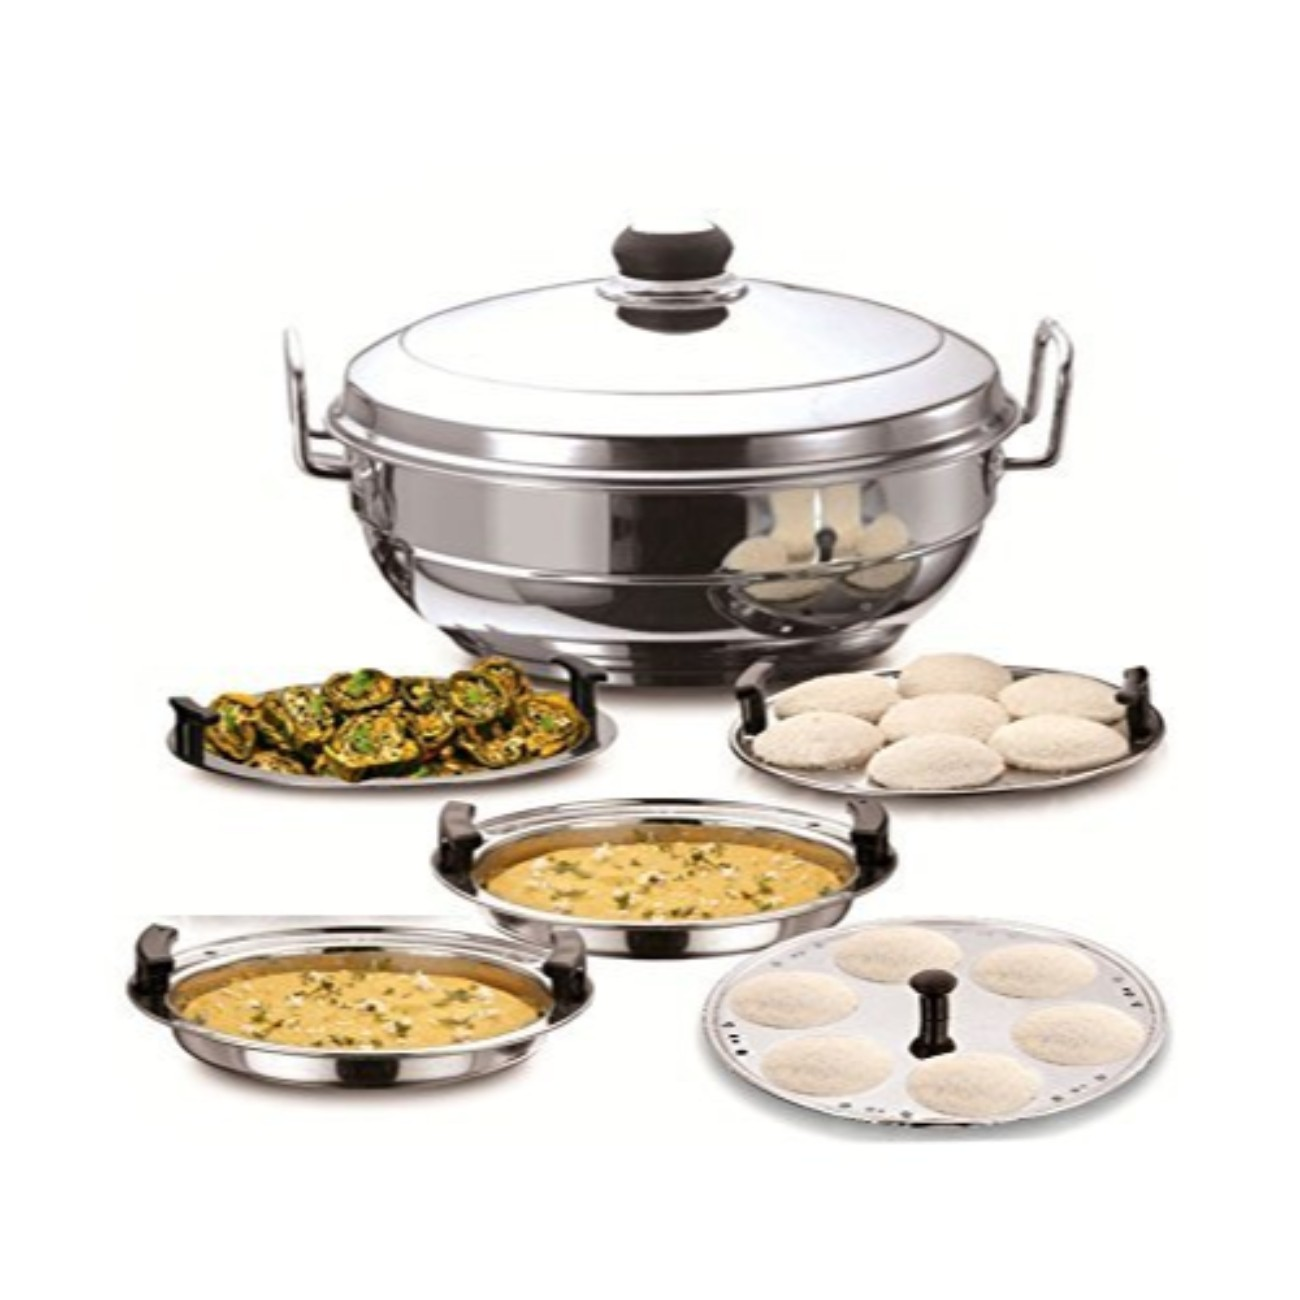 Stainless Steel Induction Kadai With Lid & Standard Idli Maker Steamer